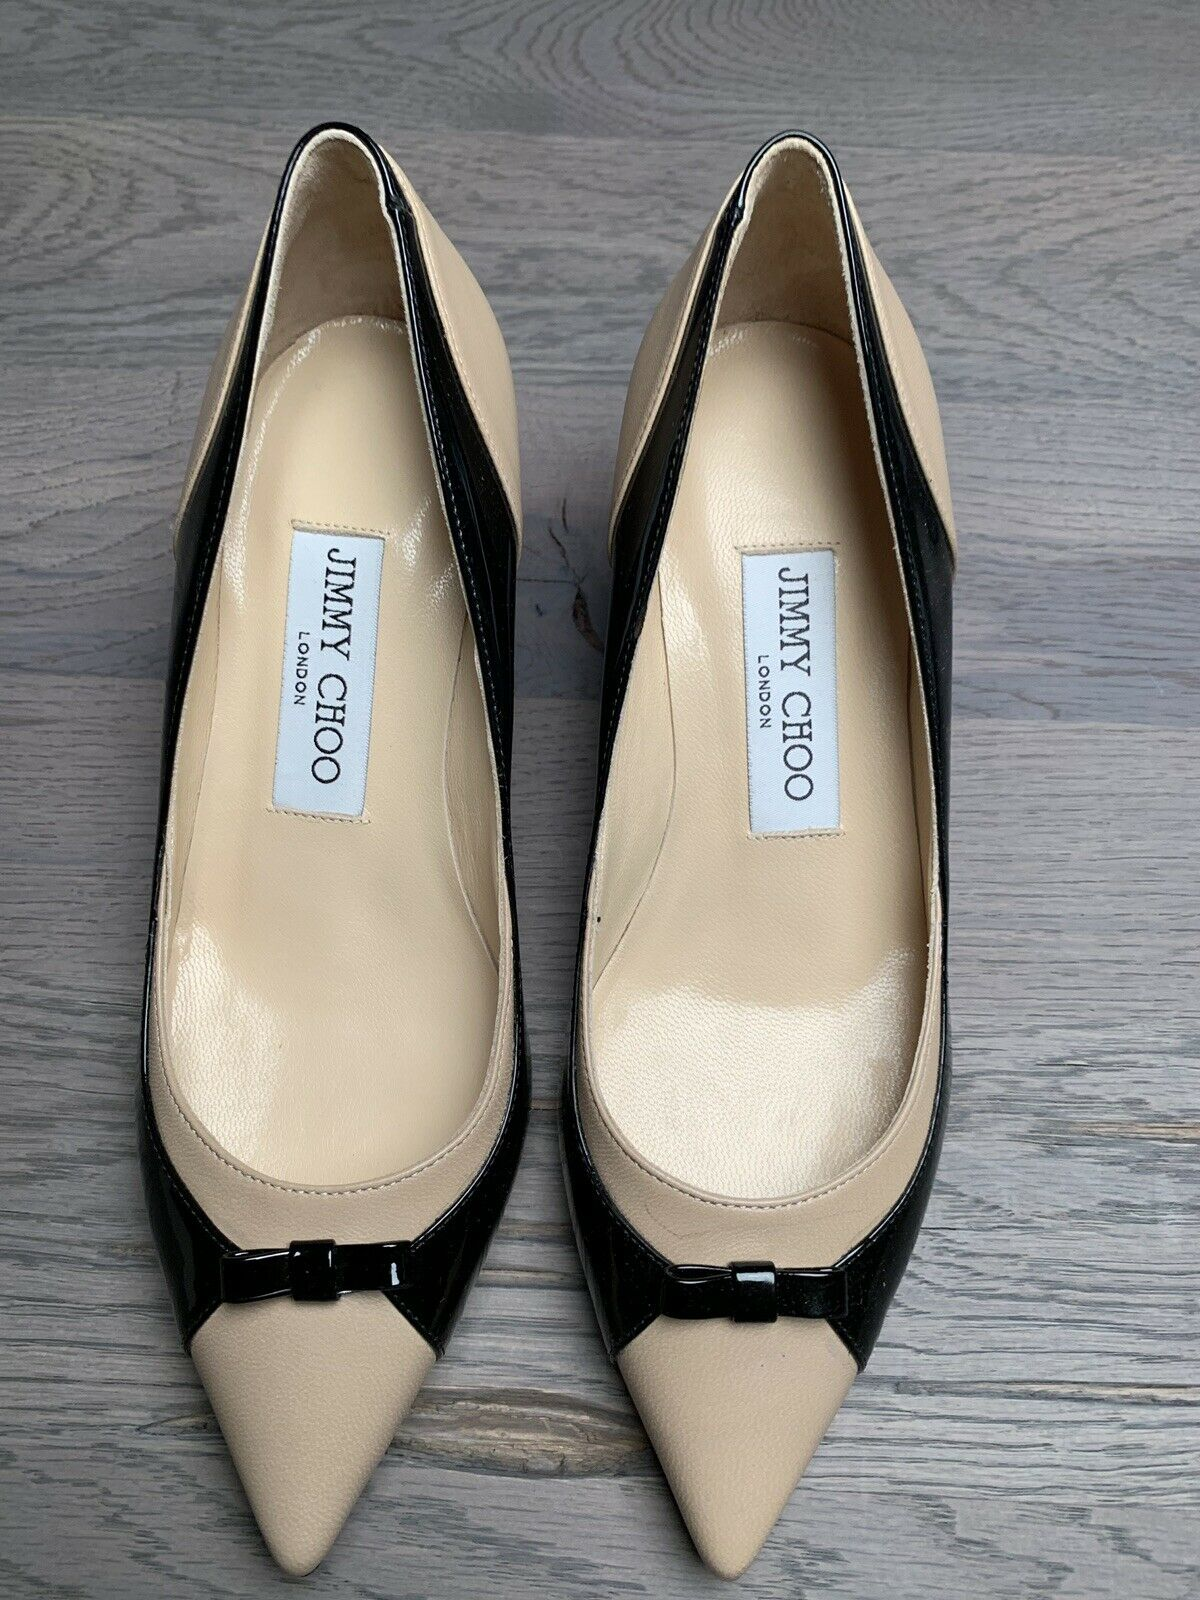 Jimmy Choo London Hazel Toe Pumps Studs Flats Heels Sling shoes shoes NEW 34